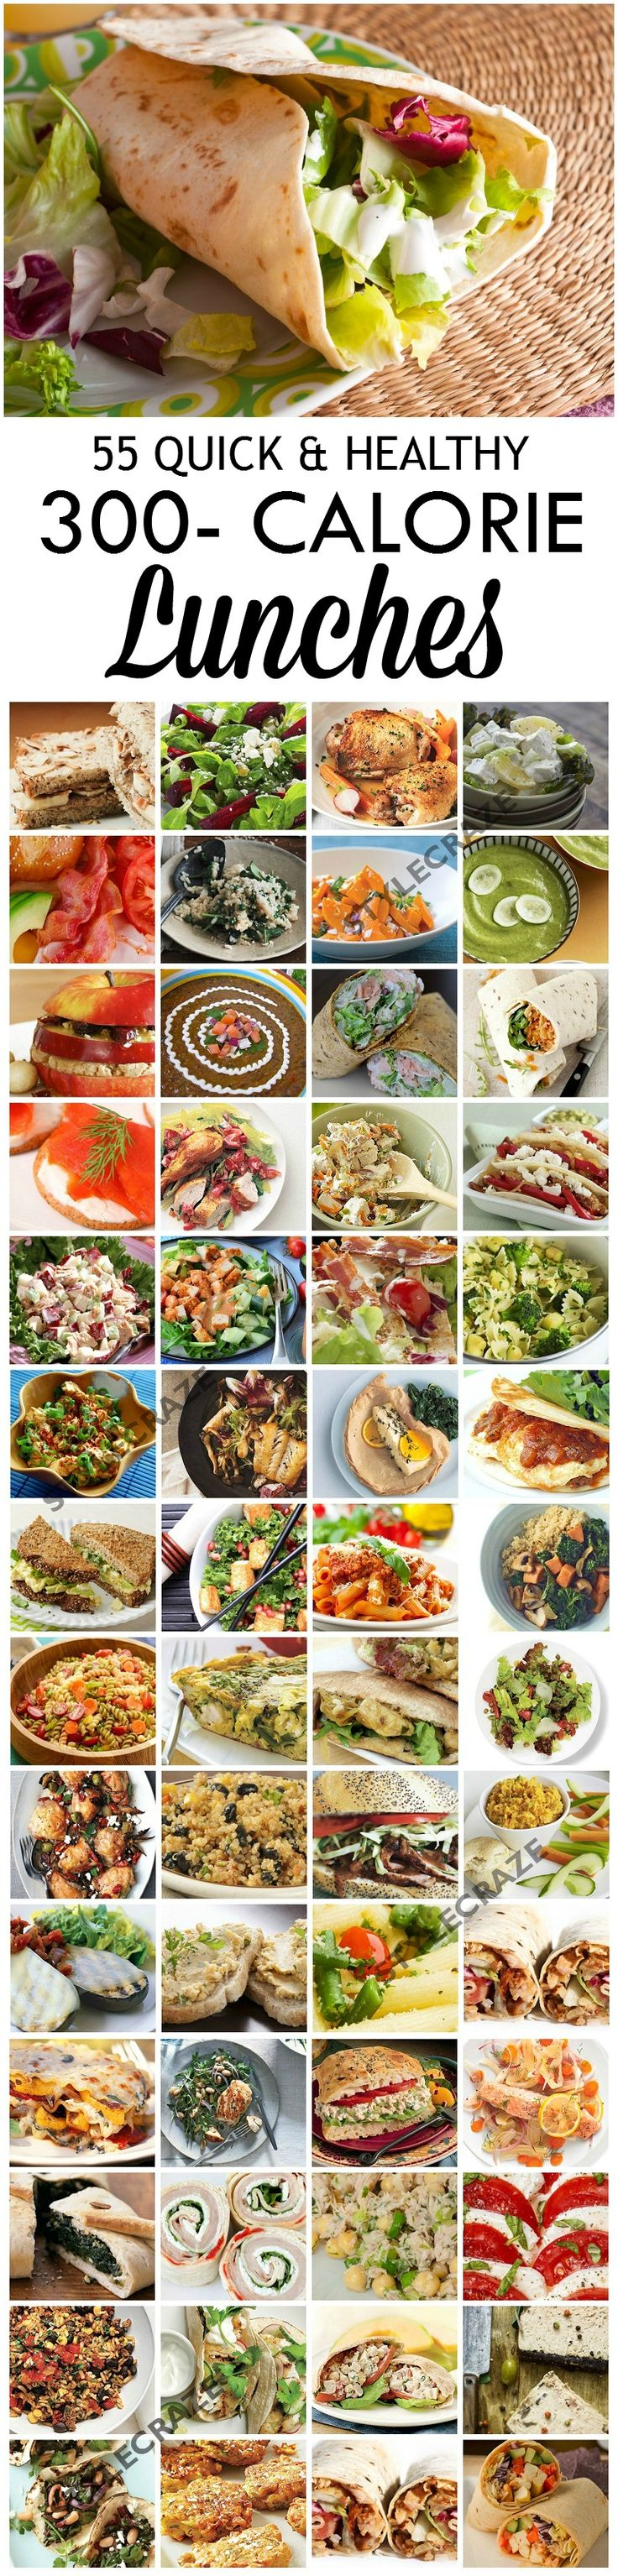 Many quick lunch recipes.